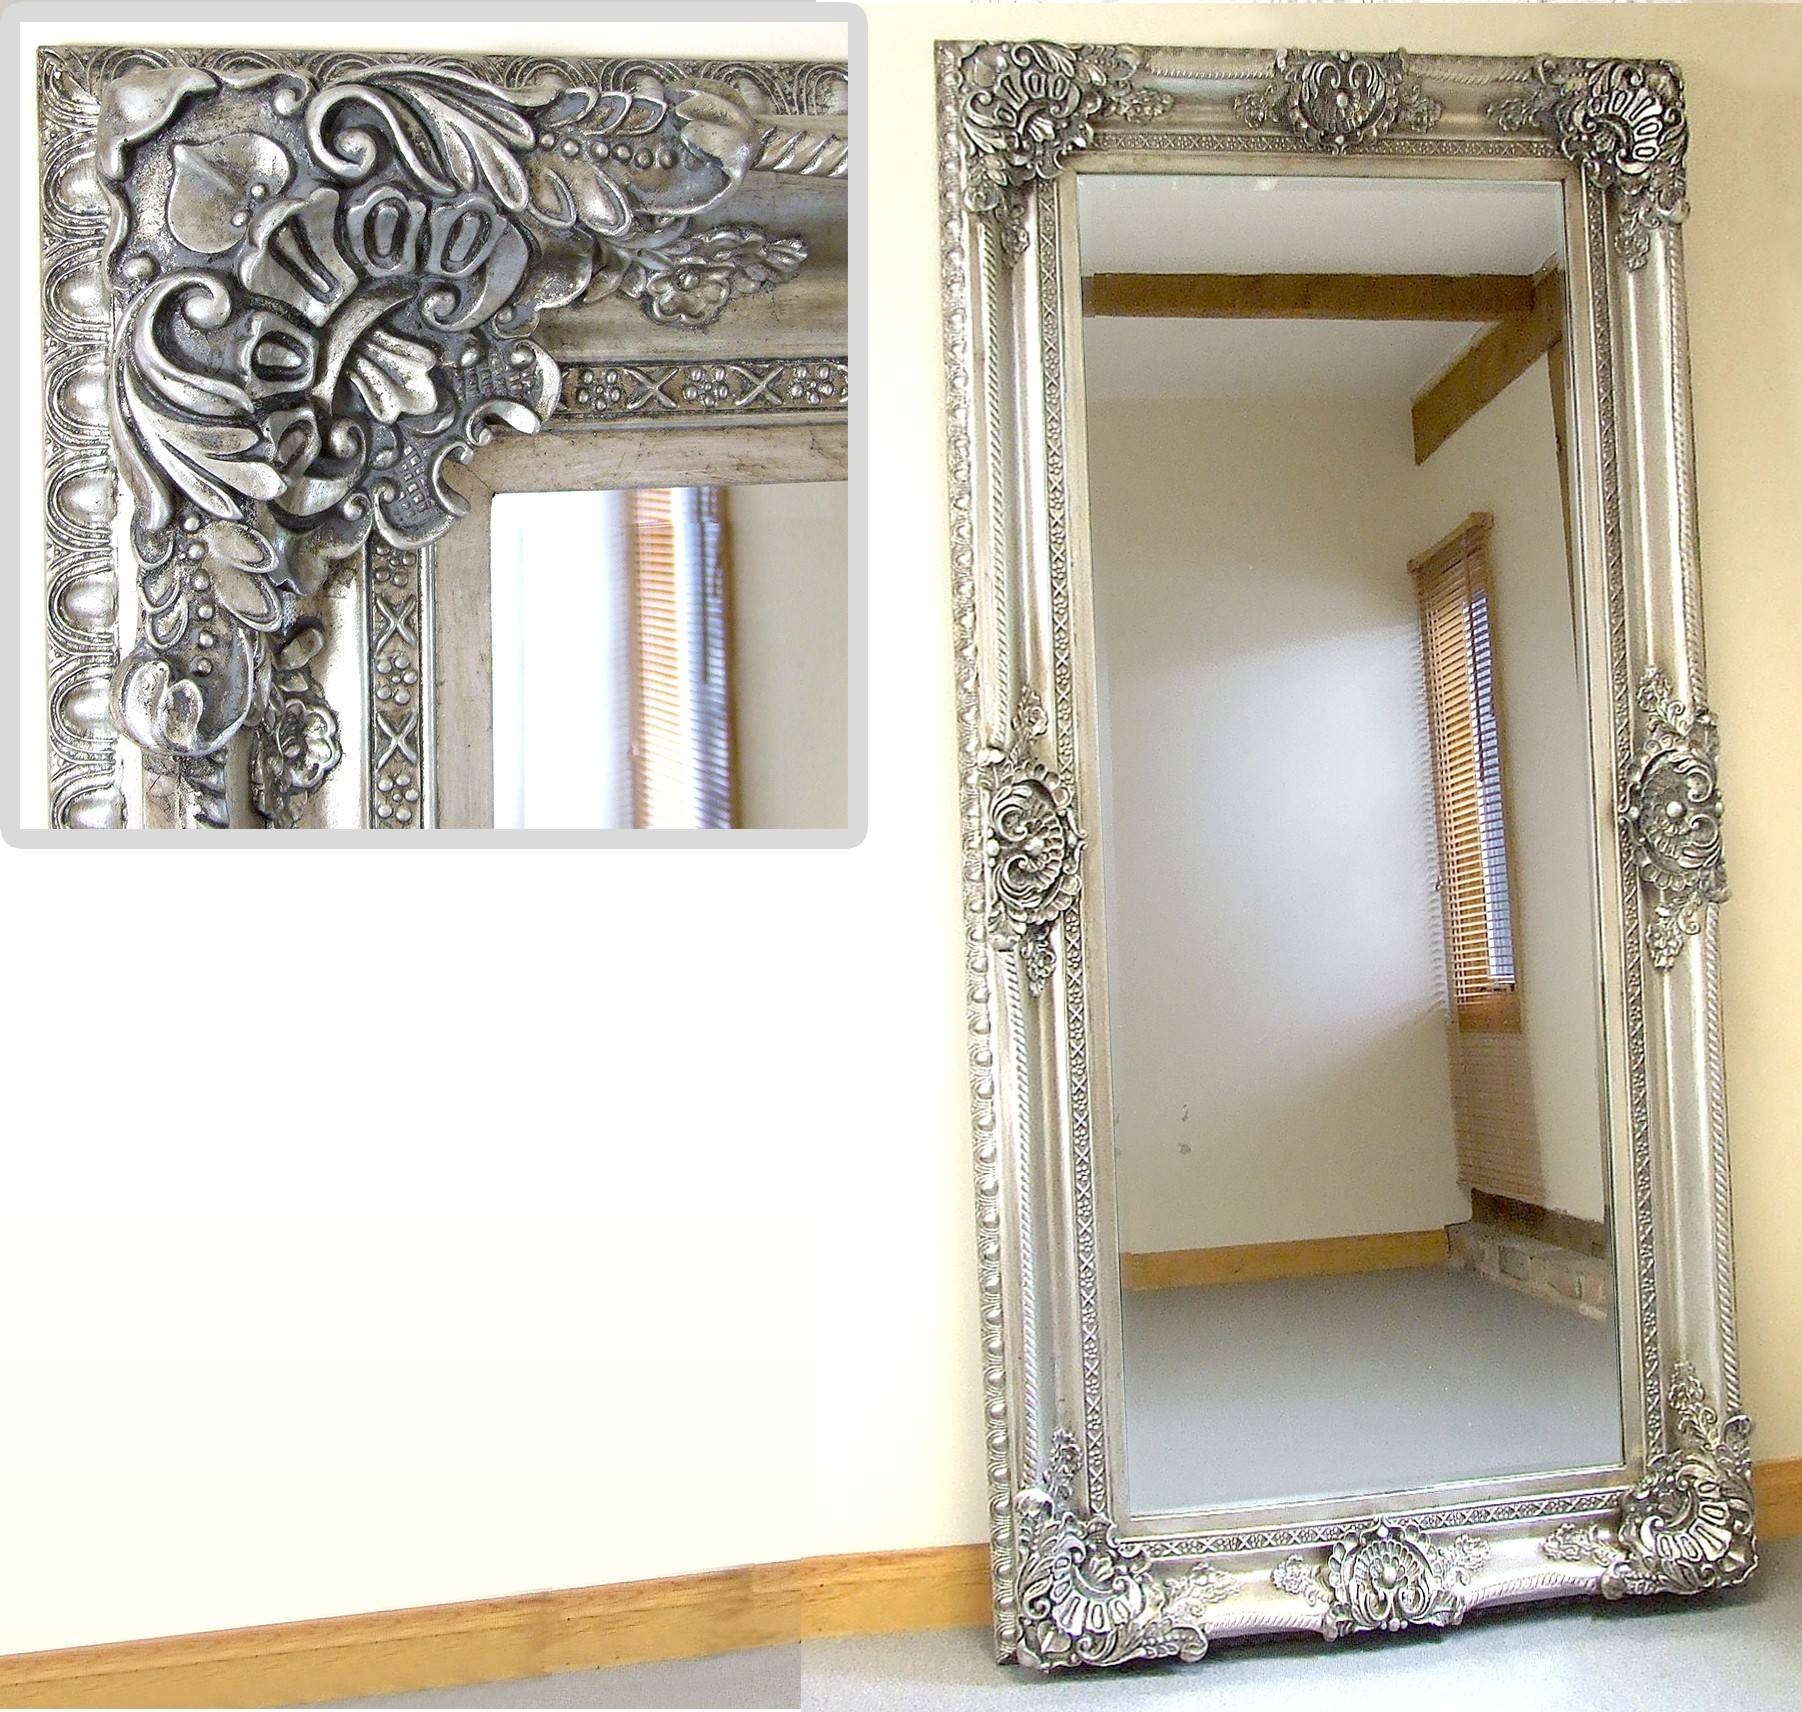 Full Length Silver Mirror 40 Unique Decoration And Ornate Full Intended For Silver Ornate Wall Mirrors (View 11 of 25)